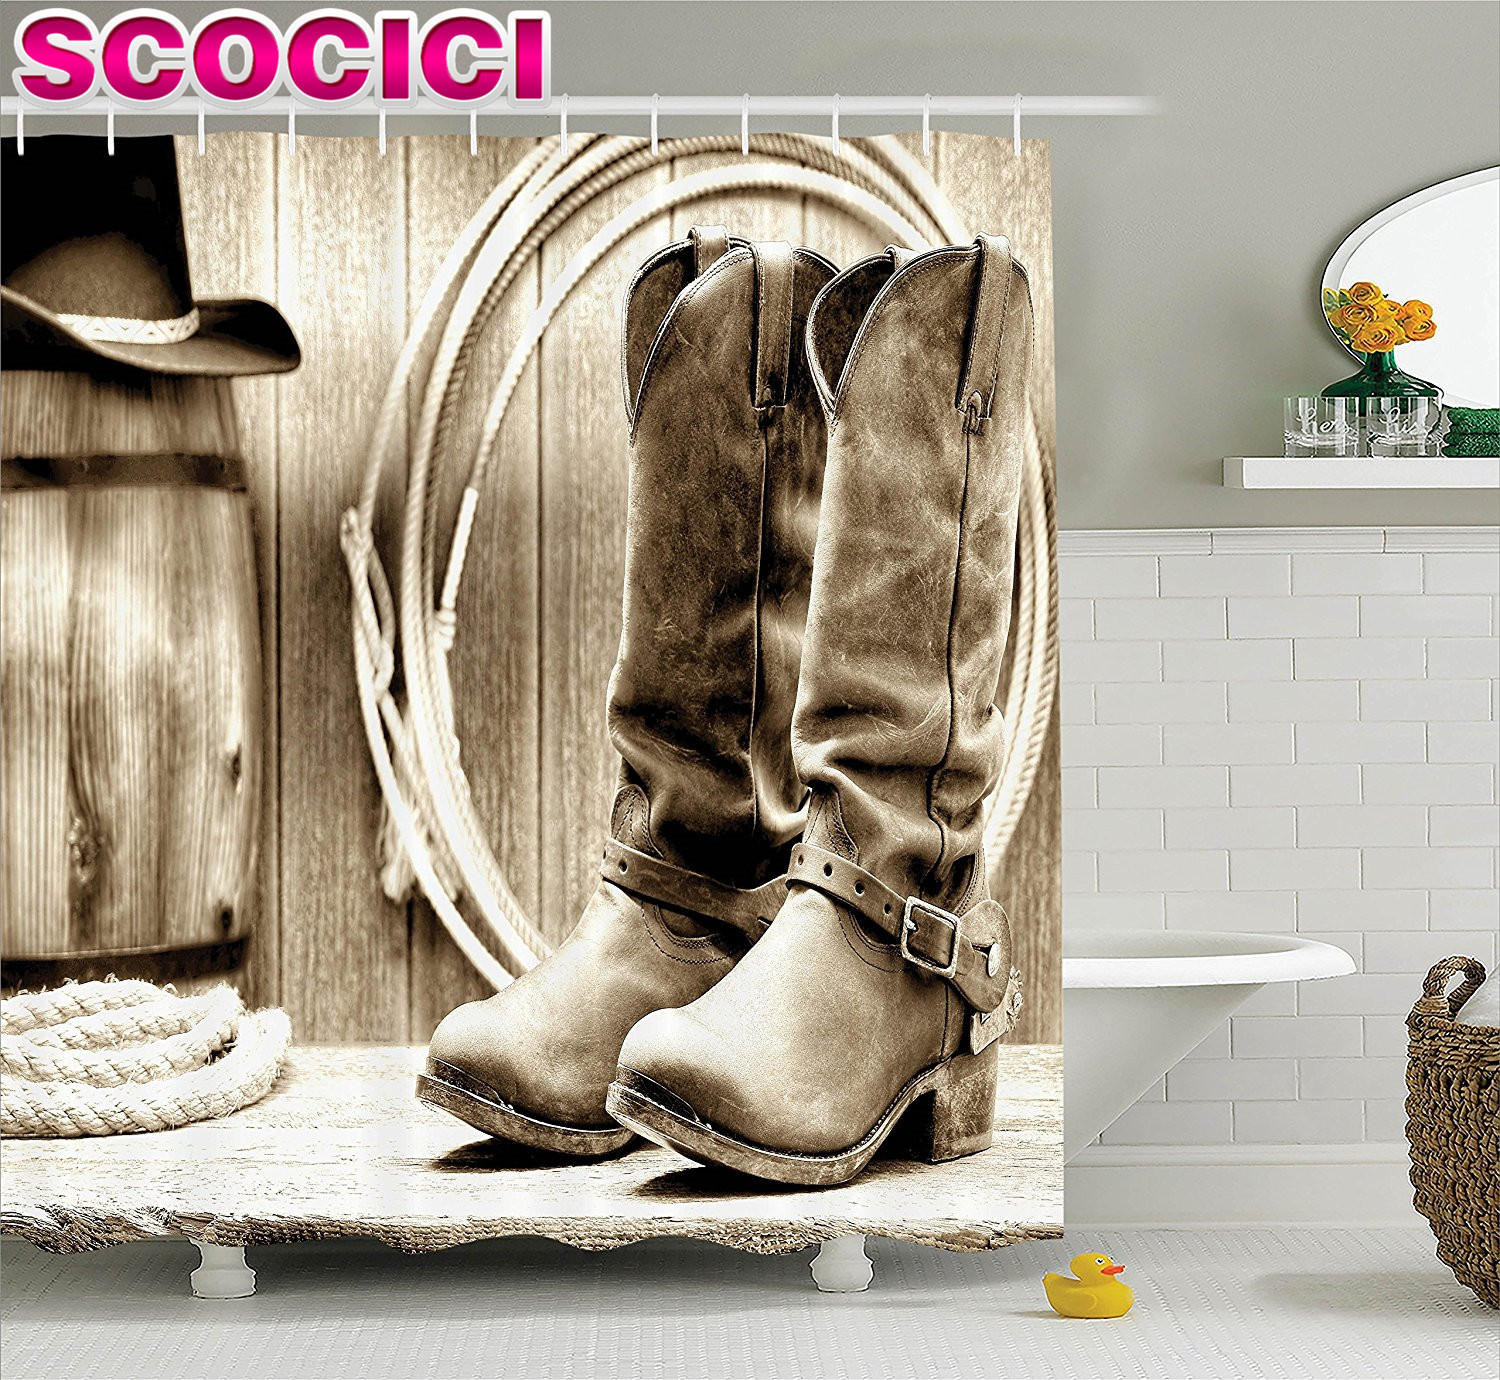 Cowboy boot bathroom decor - Cowboy Boot Bathroom Decor Western Decor Shower Curtain Set Traditional Rodeo Supplies With Roper Boots